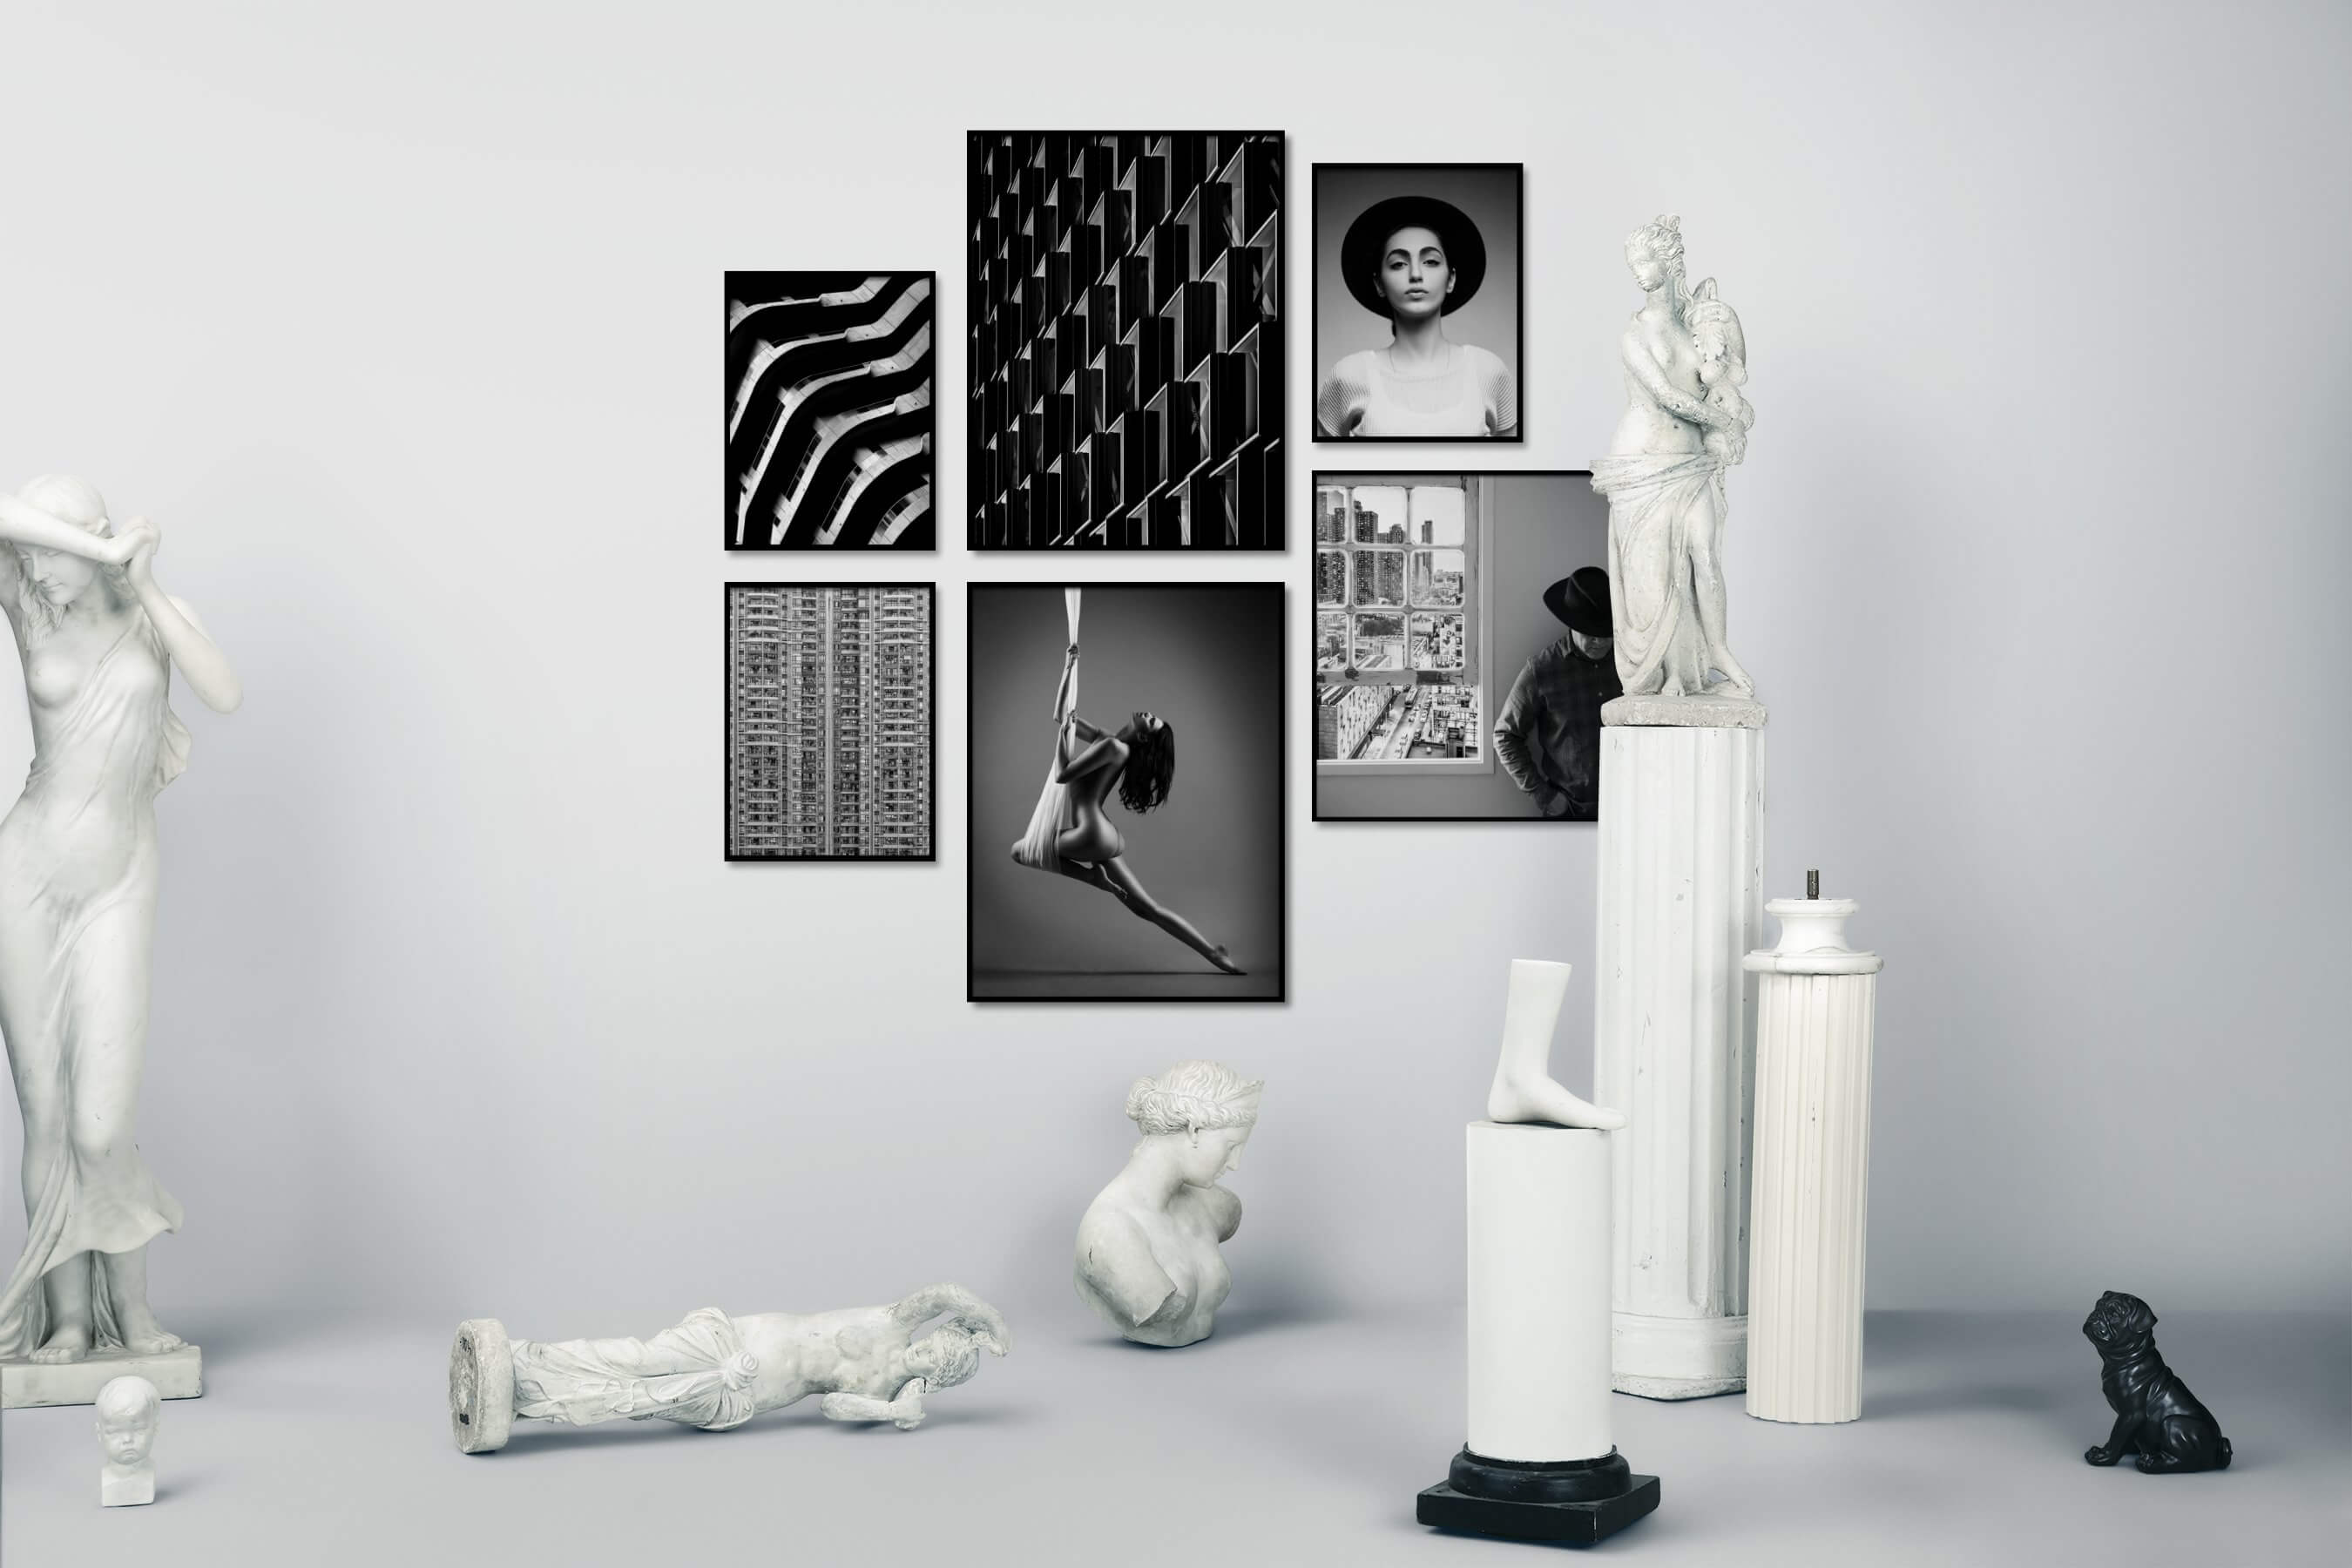 Gallery wall idea with six framed pictures arranged on a wall depicting Black & White, For the Maximalist, City Life, Fashion & Beauty, For the Minimalist, and Americana